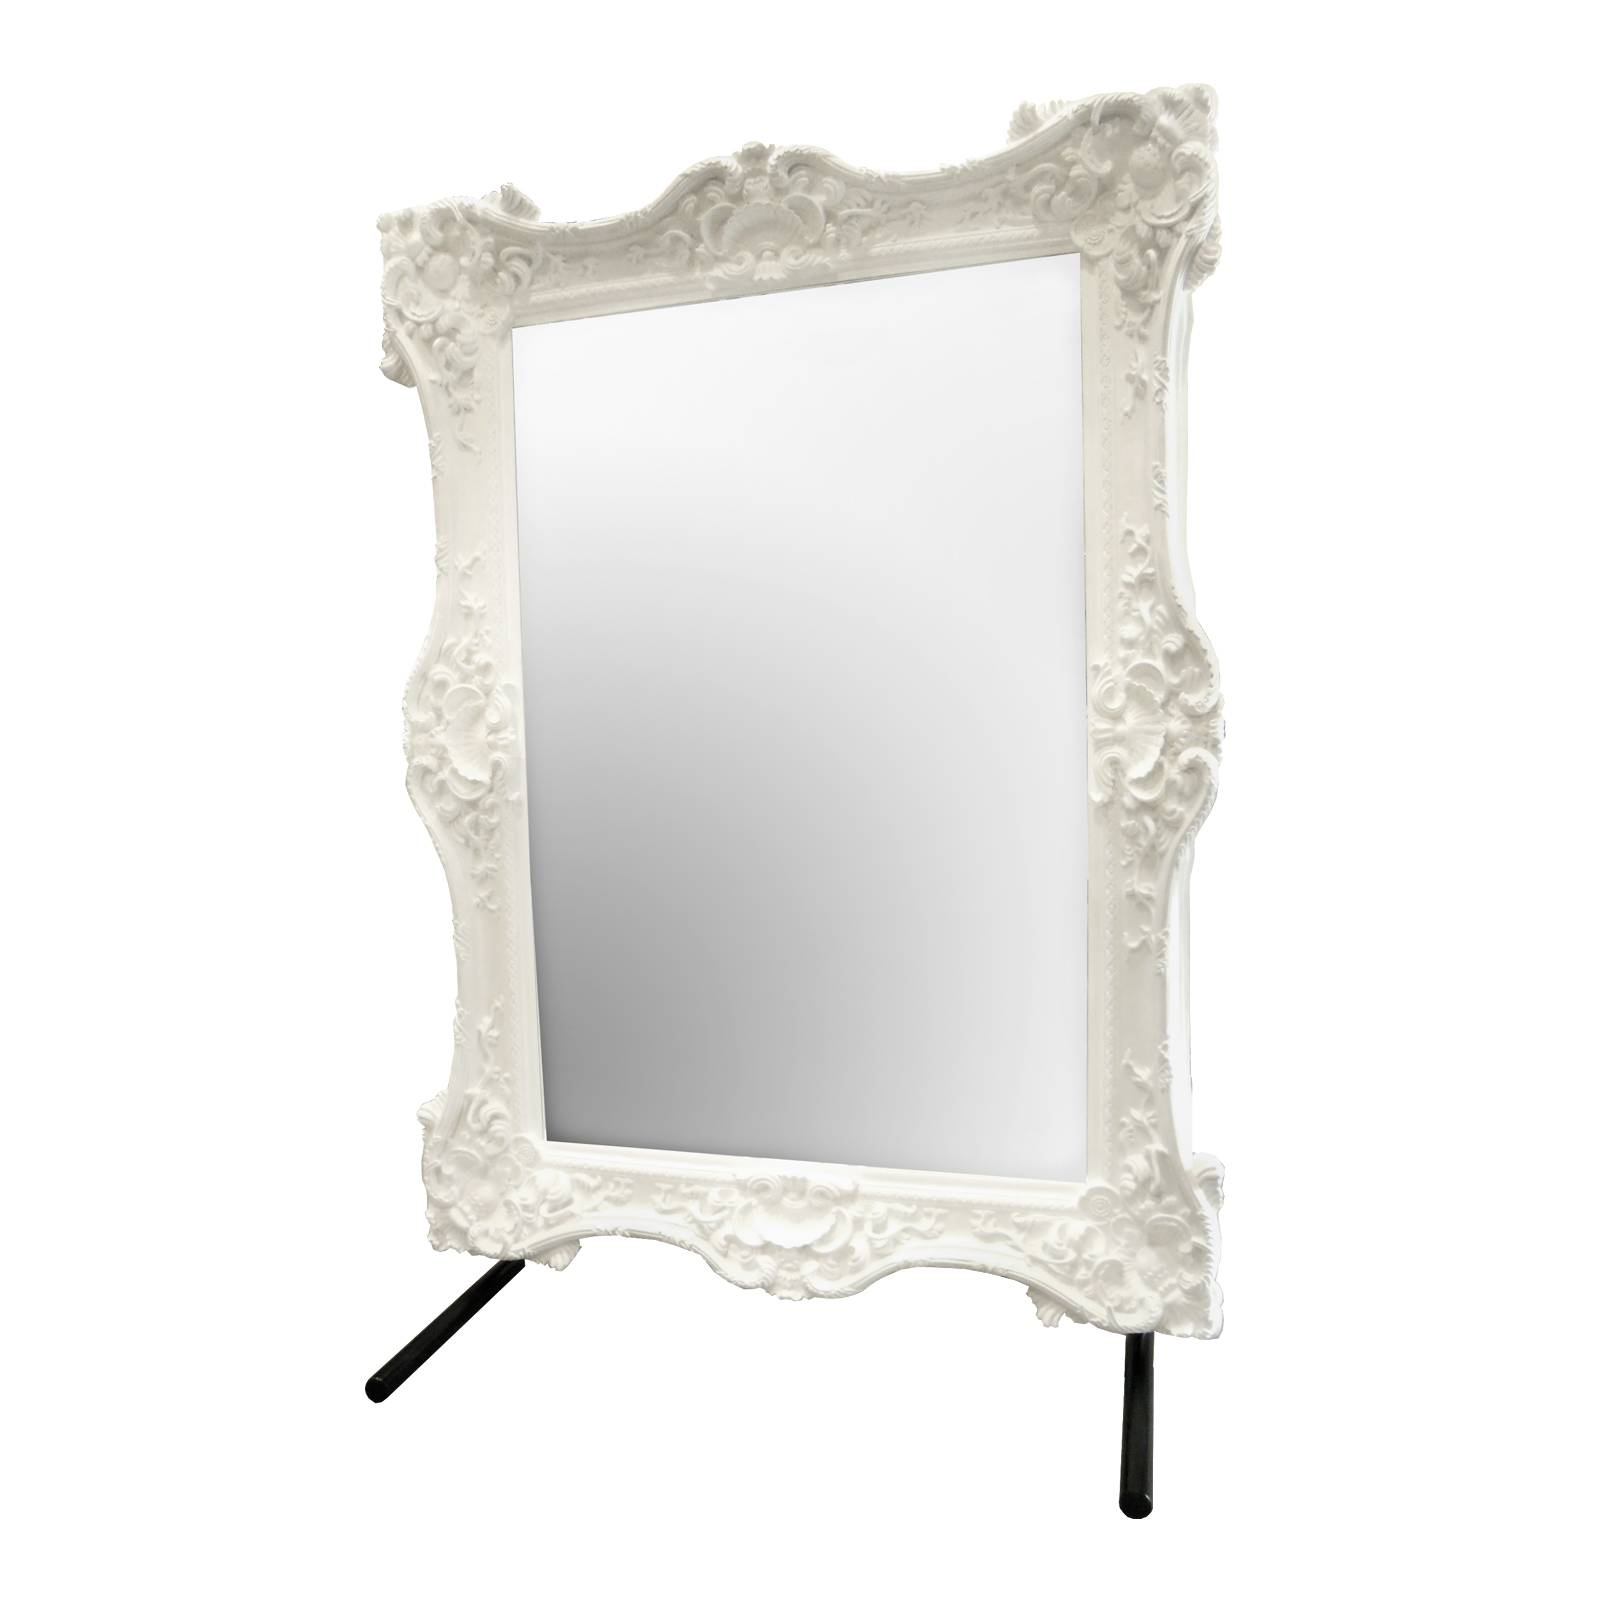 Bathroom: Astounding Baroque Mirror With Unique Frame For Bathroom for Black Baroque Mirrors (Image 8 of 25)